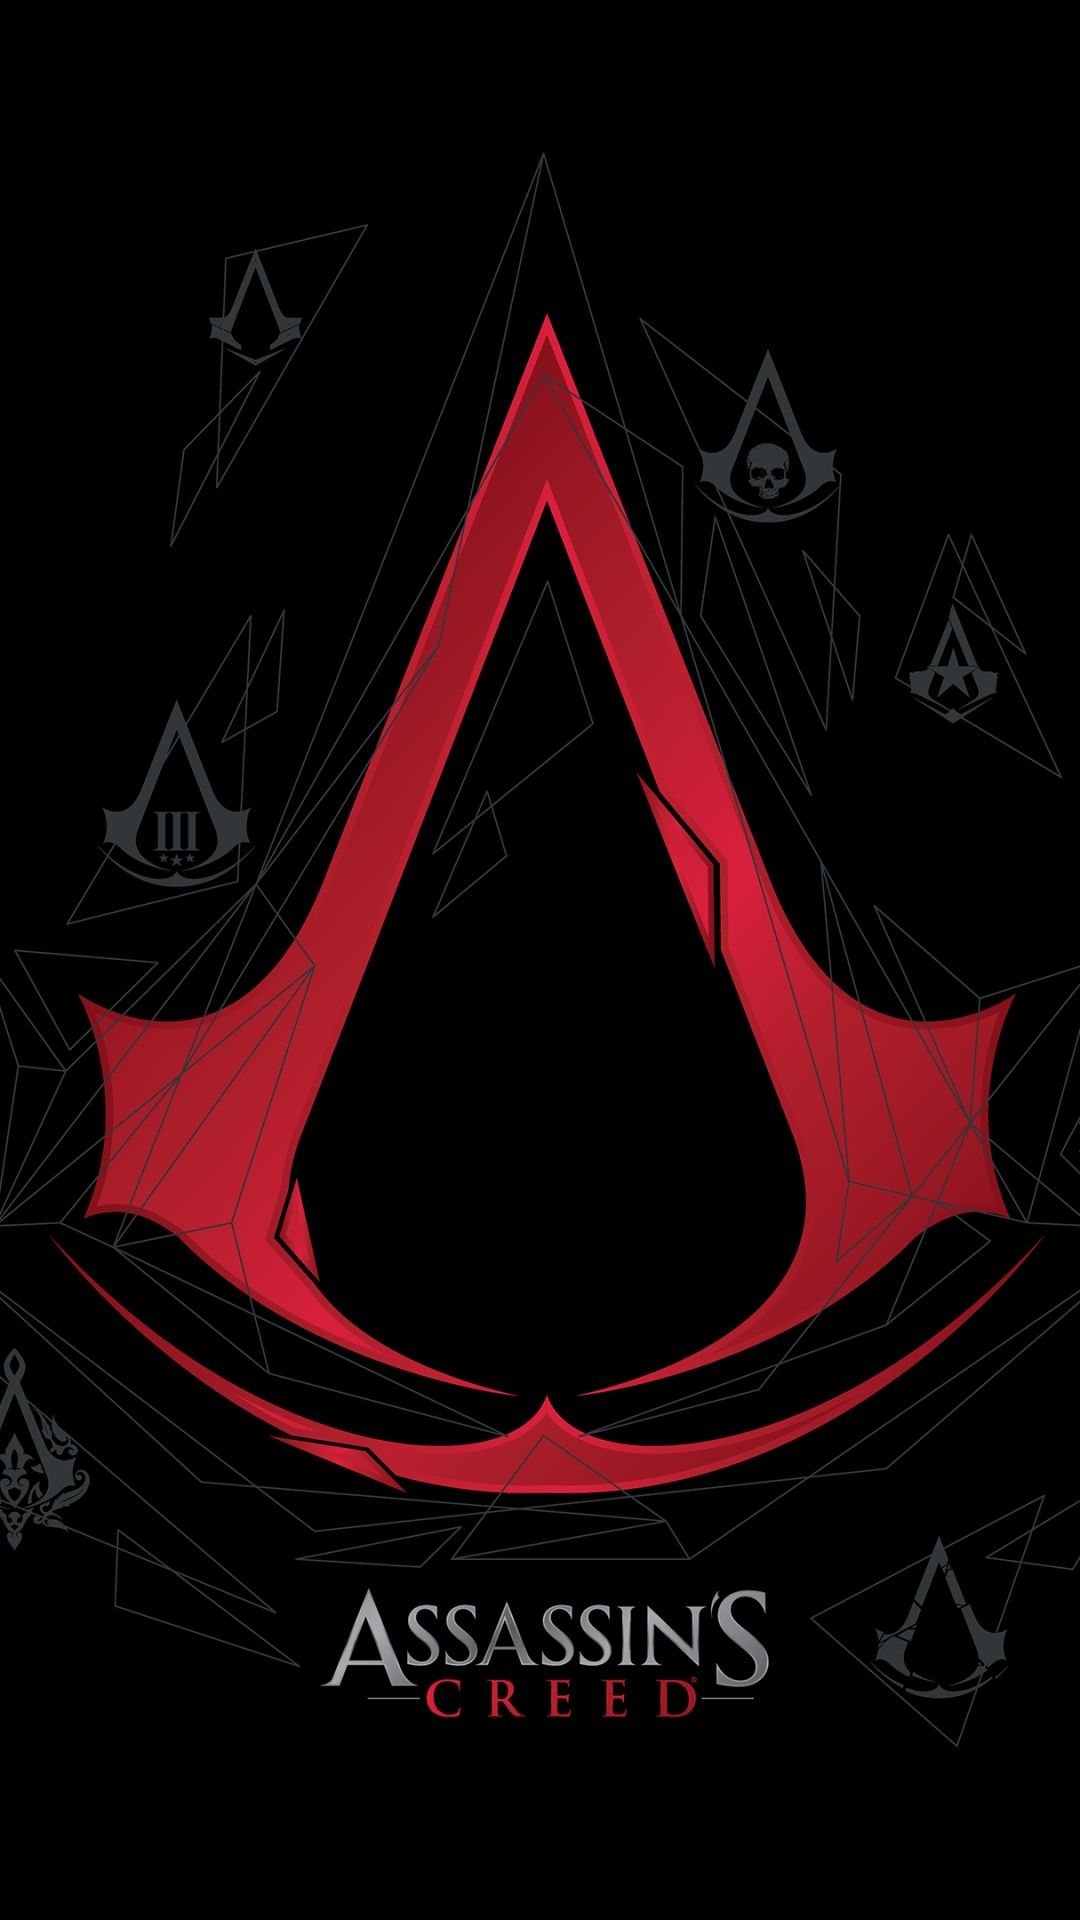 Pin on Assassin's Creed